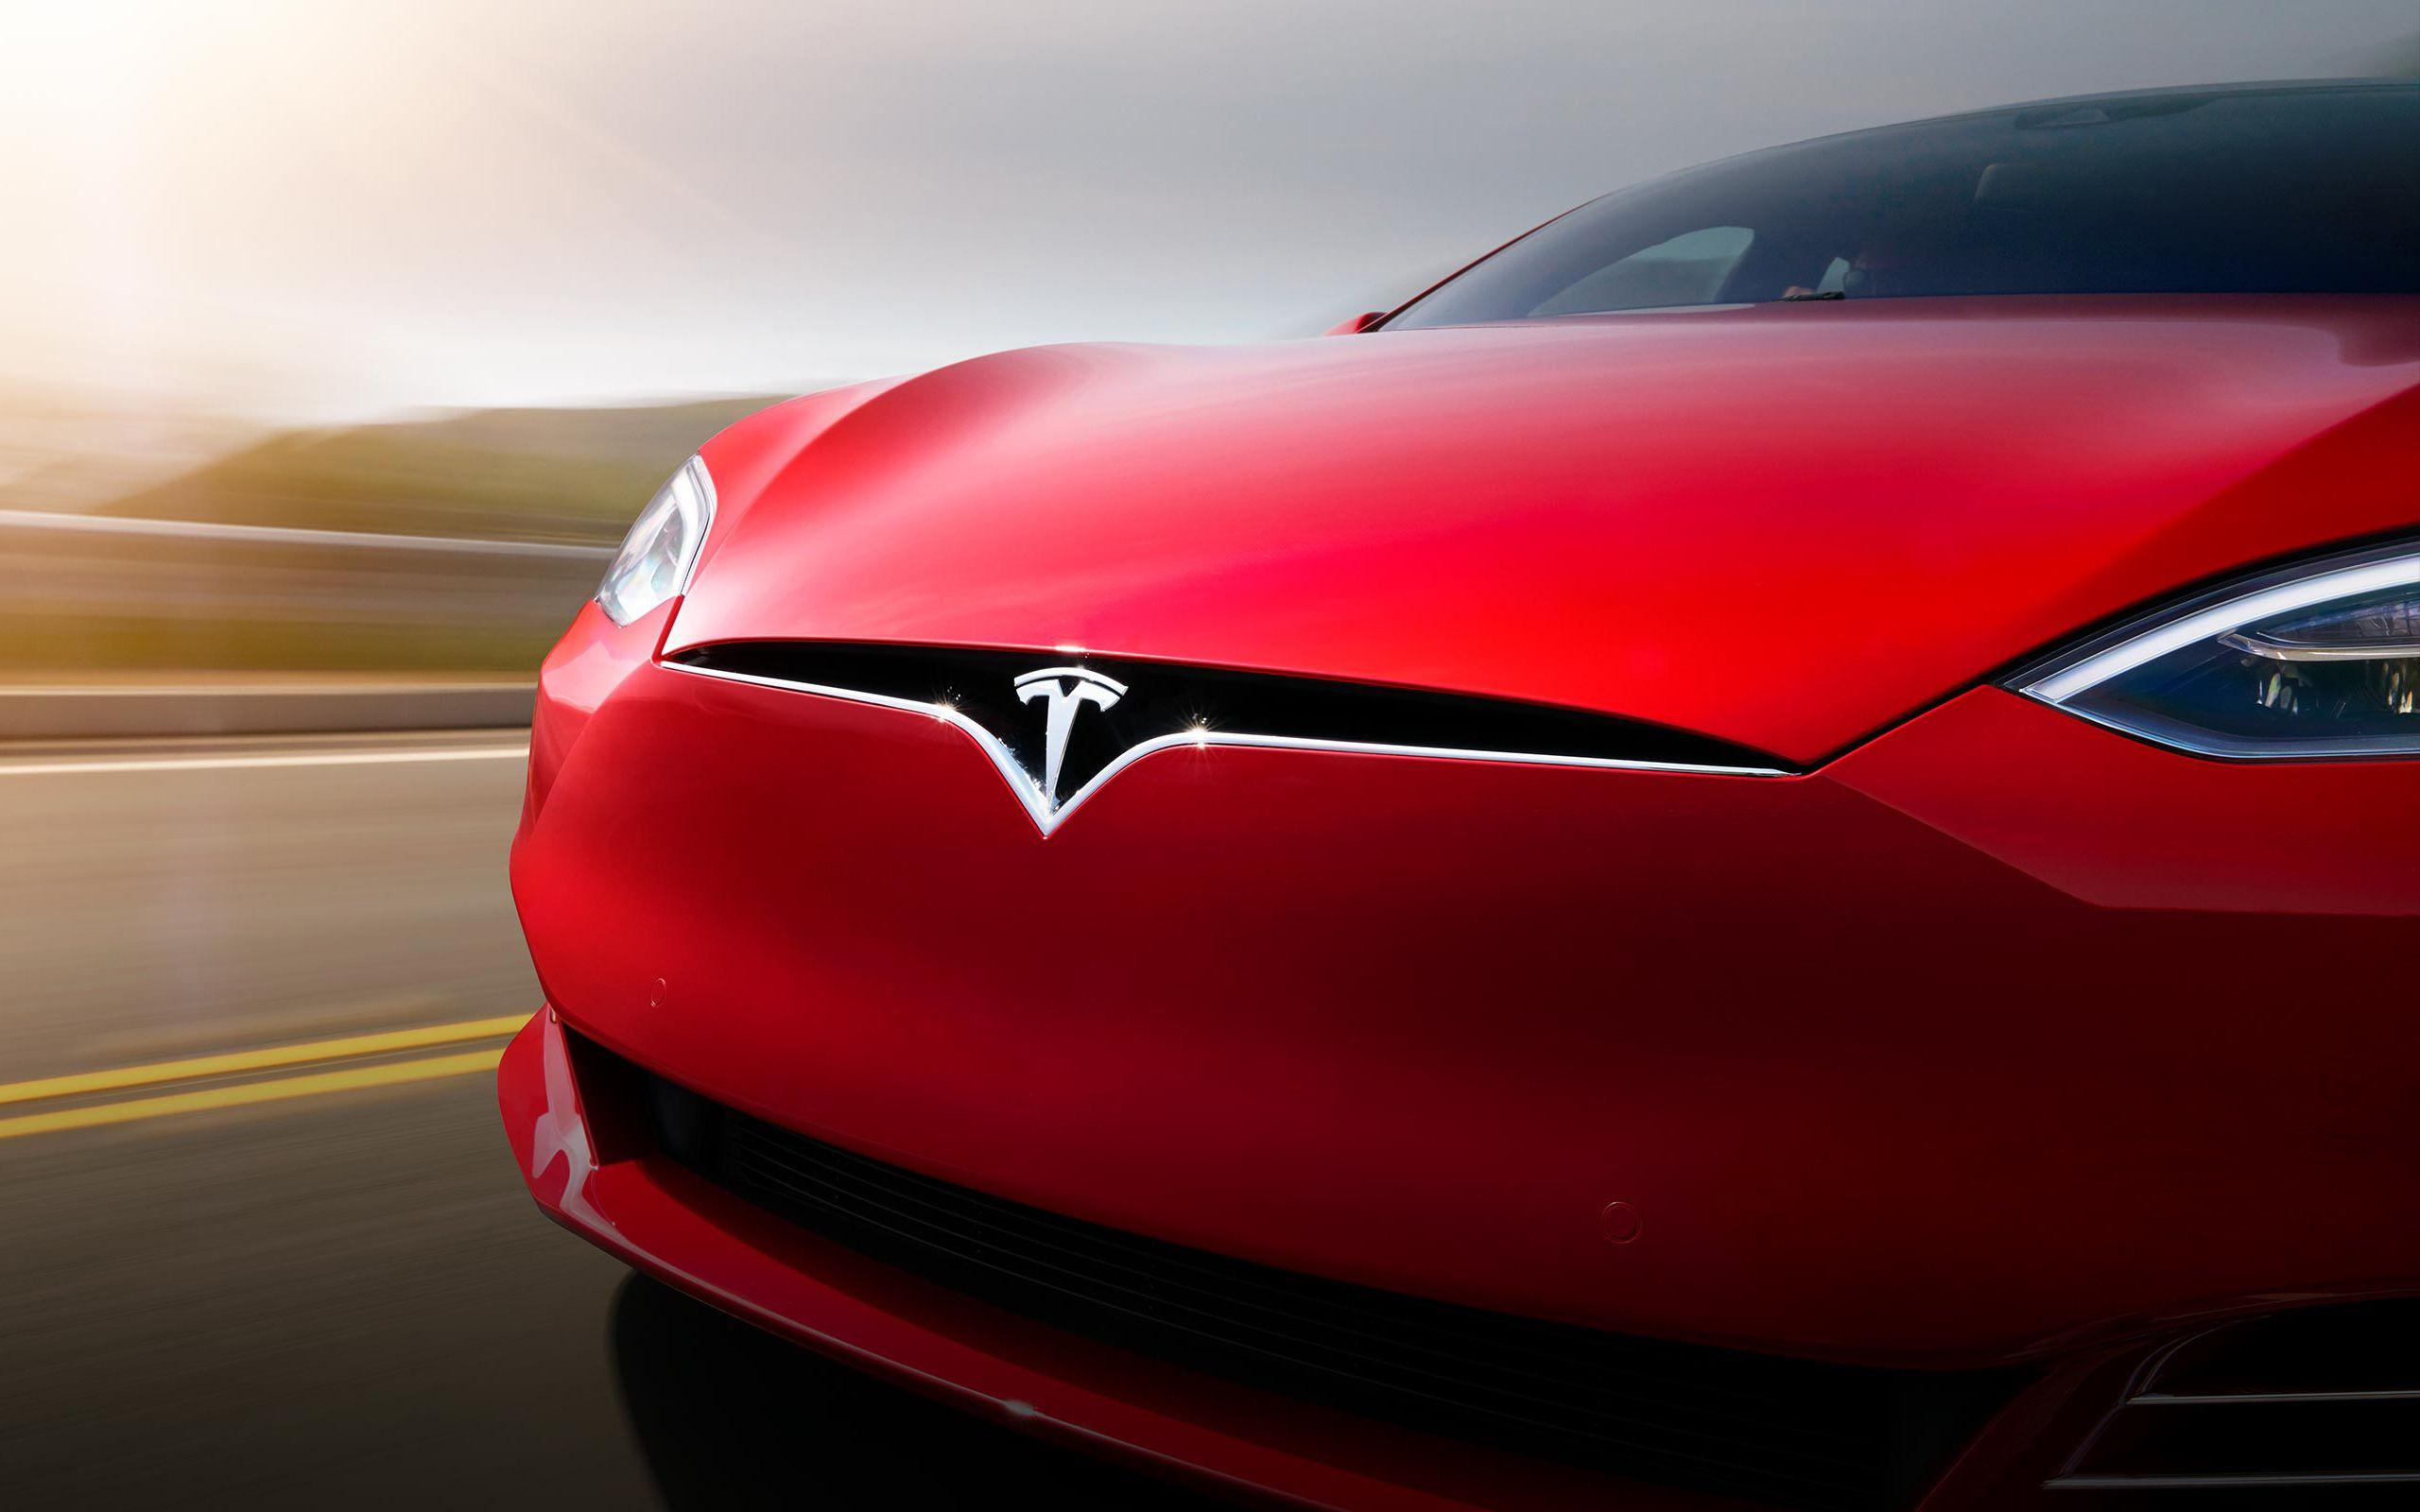 Tesla Car Up Close Wallpaper Background 62153 2560x1600 px